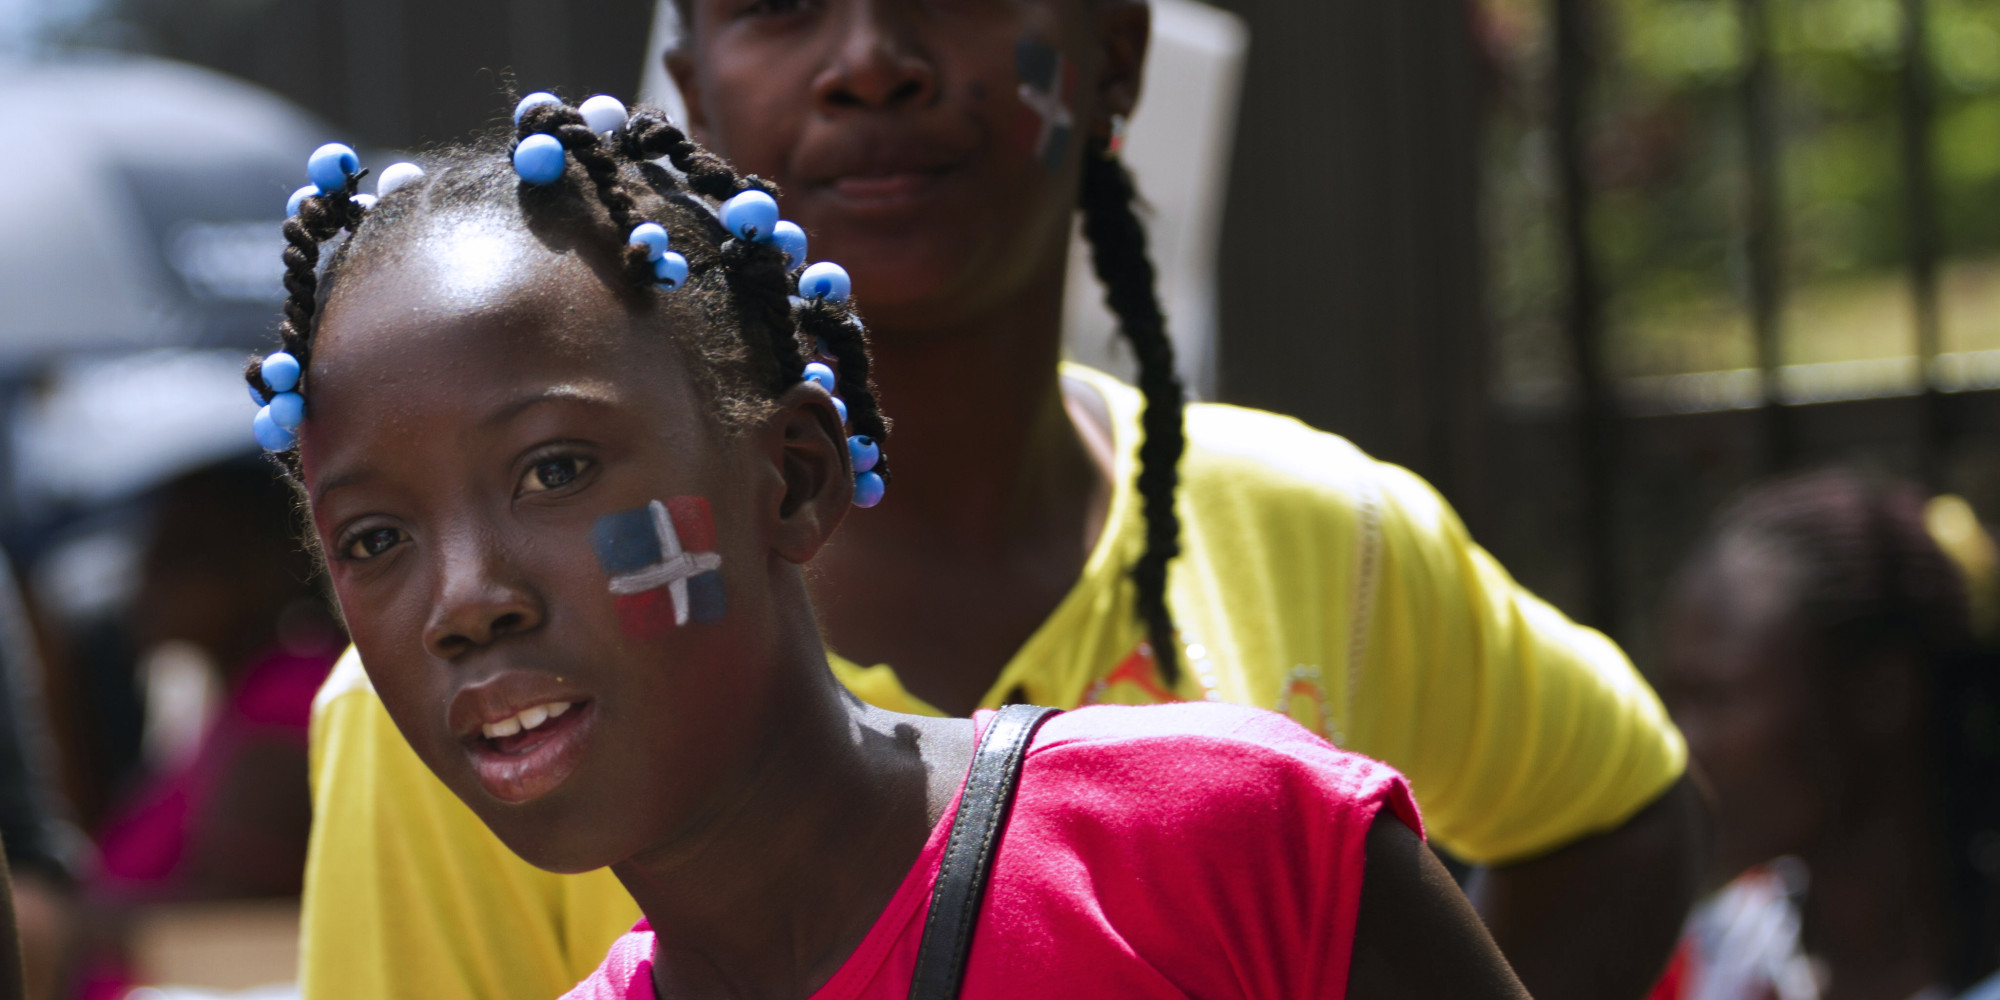 dominicans and afro americans essay African-americans was african slaves of americans, and dominicans were african slaves of the spanish hevesi of the new york times says, dominican and afro-americans culture was formed from one ethnicity, africans (hevesi 86.